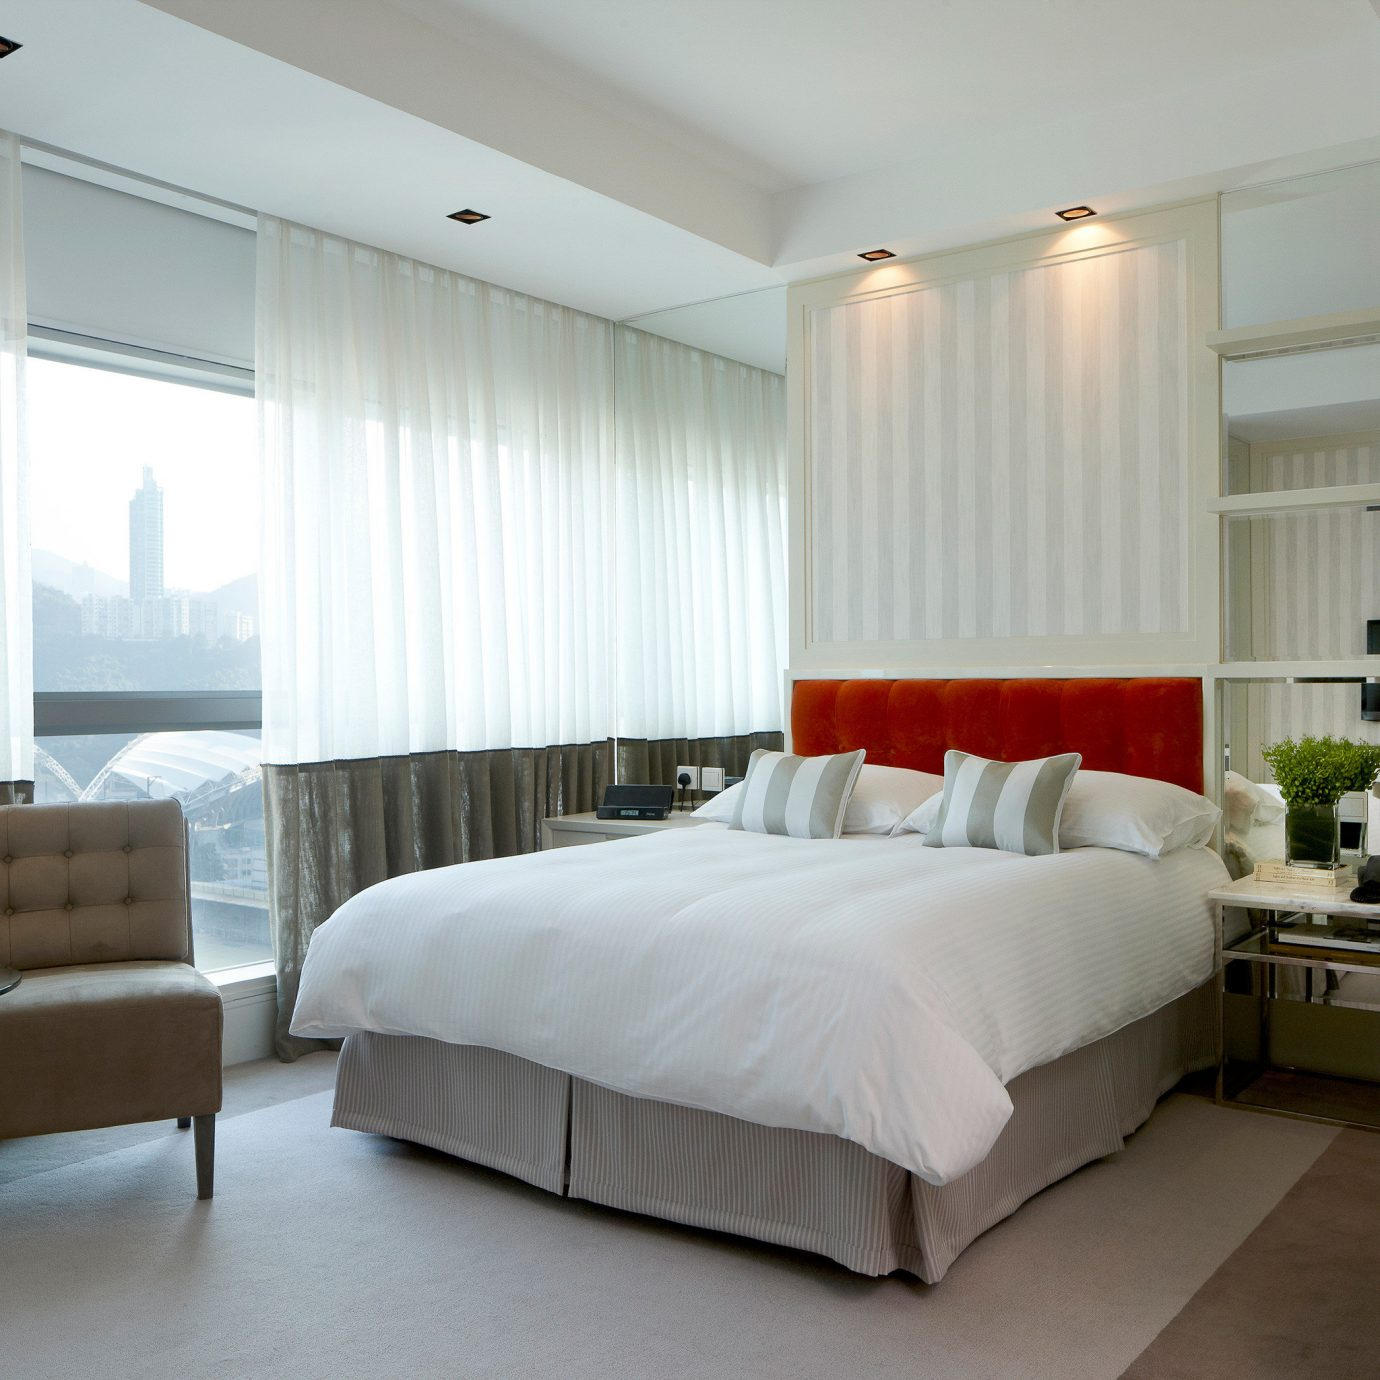 Bedroom Elegant Luxury Modern Scenic views Suite property home condominium living room